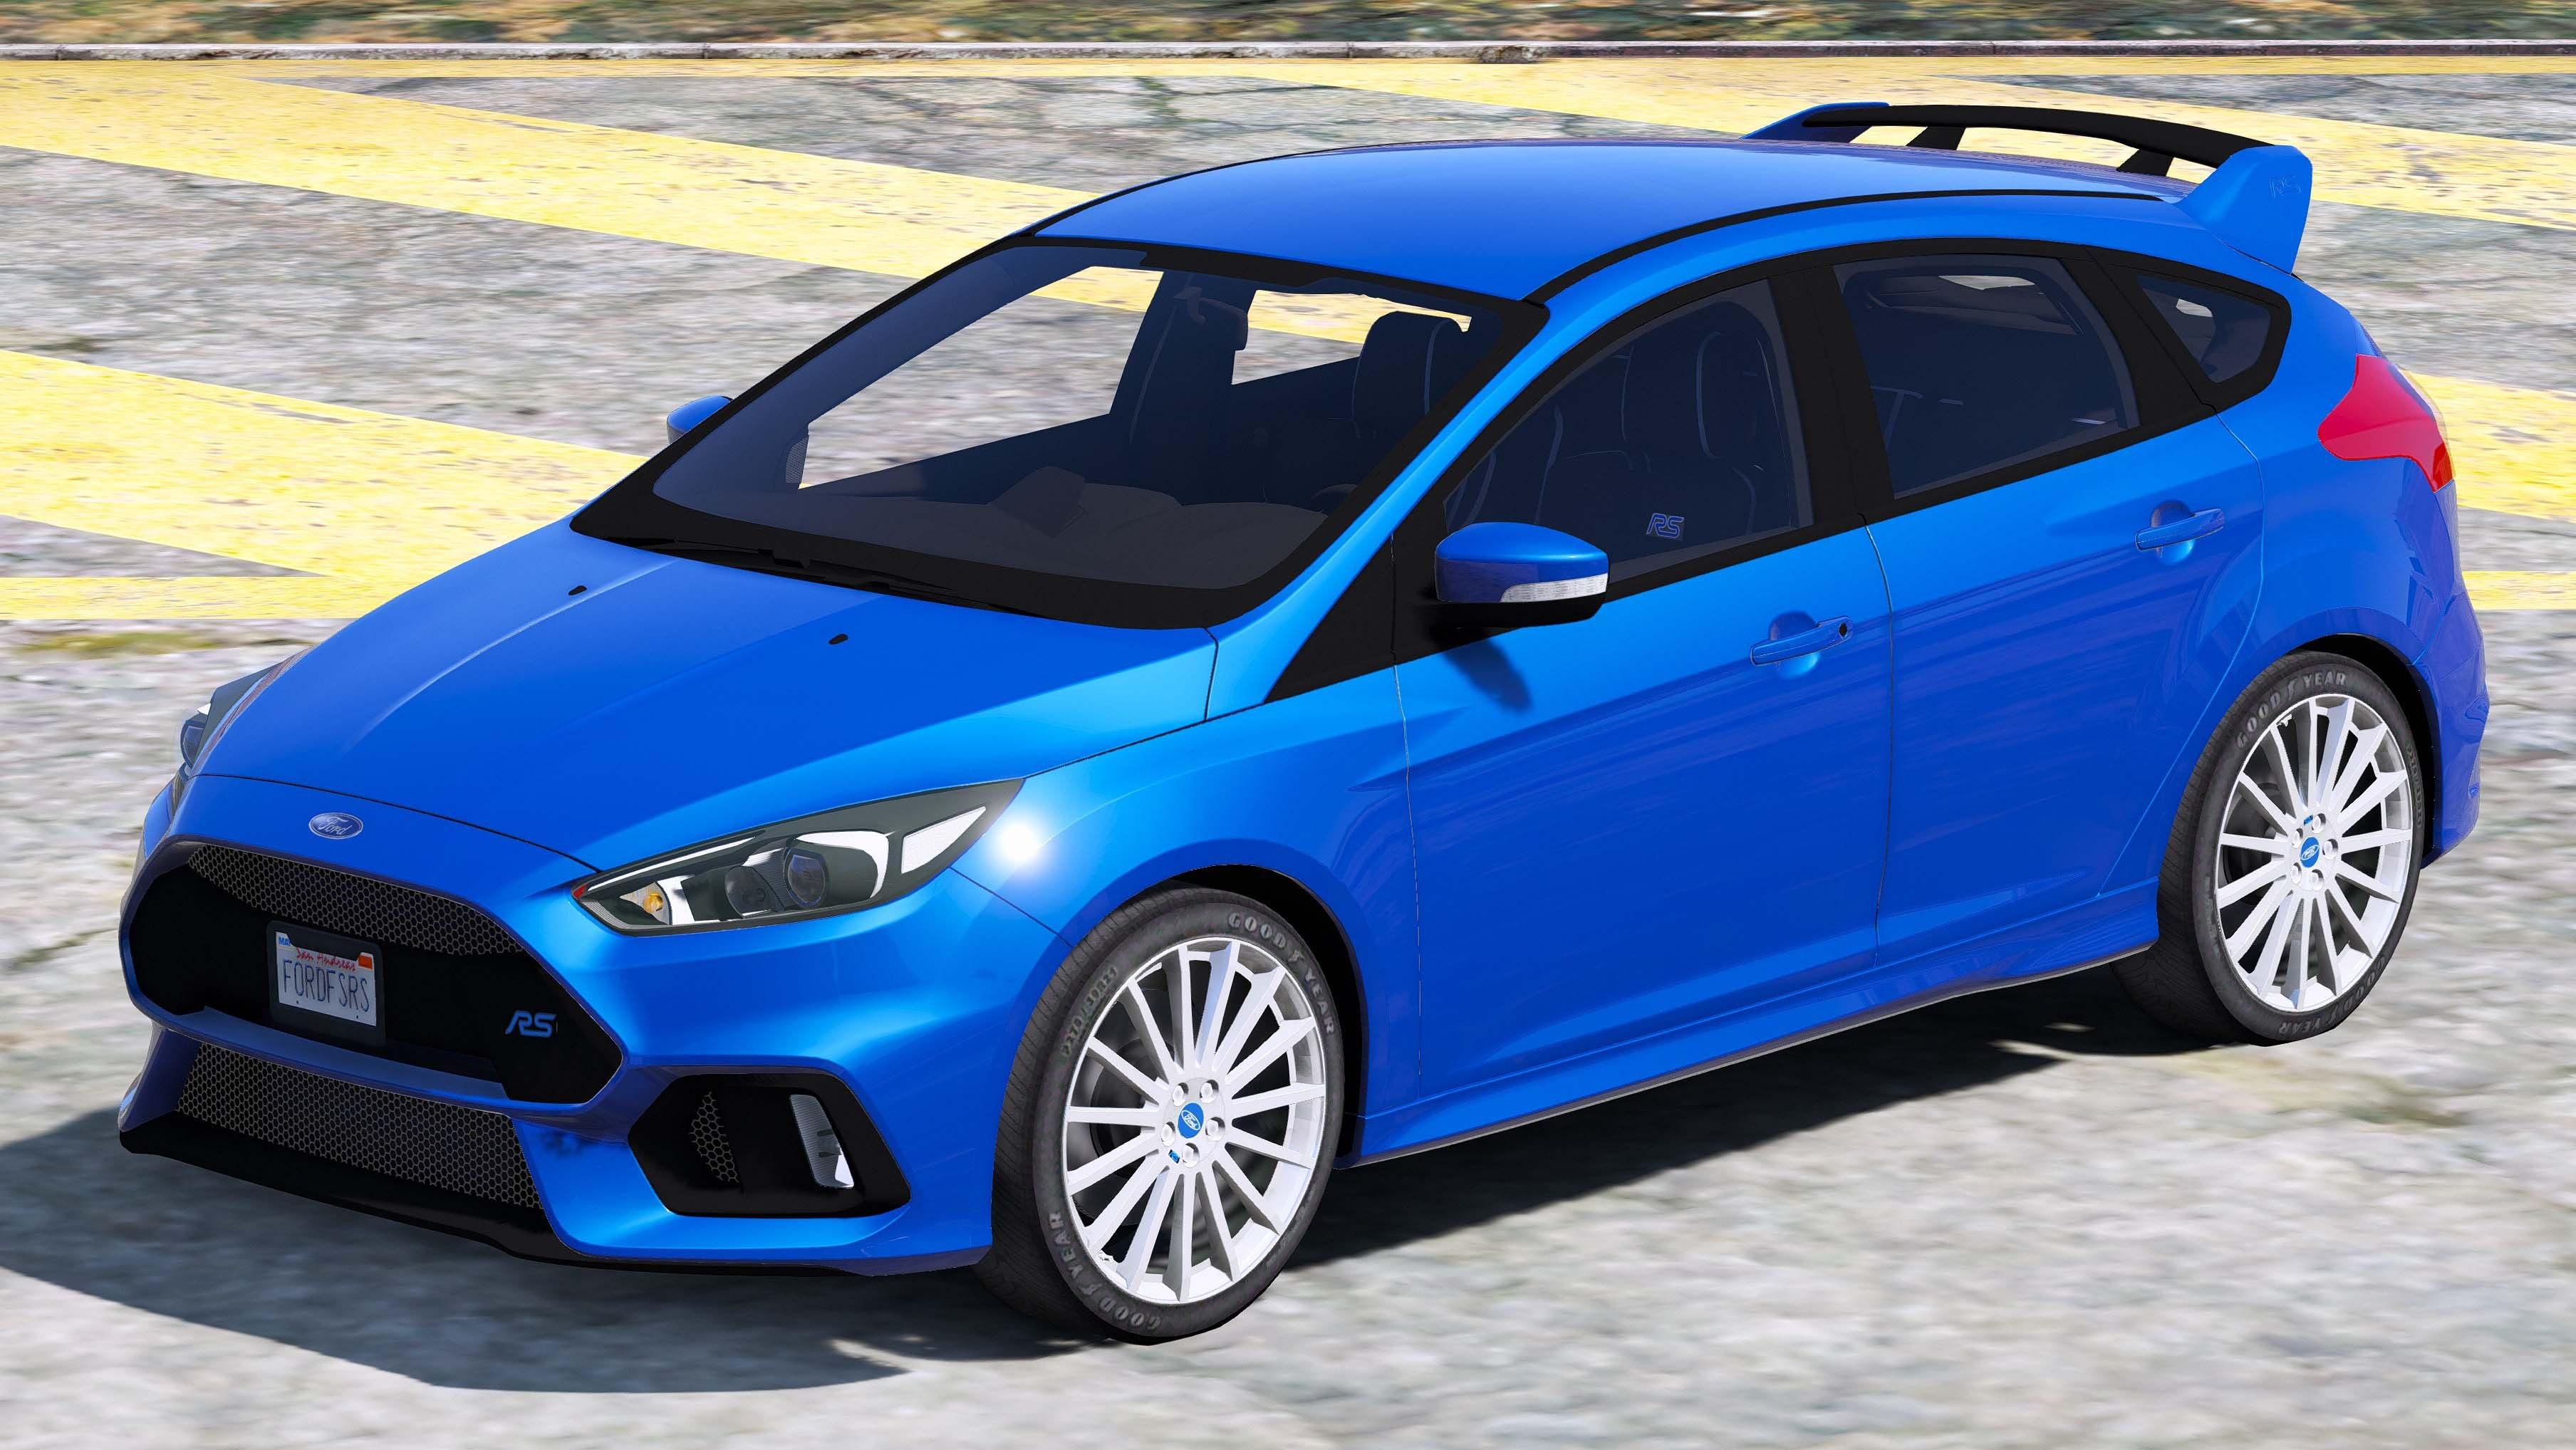 ford focus rs 2016 v hicules t l chargements gta 5. Black Bedroom Furniture Sets. Home Design Ideas